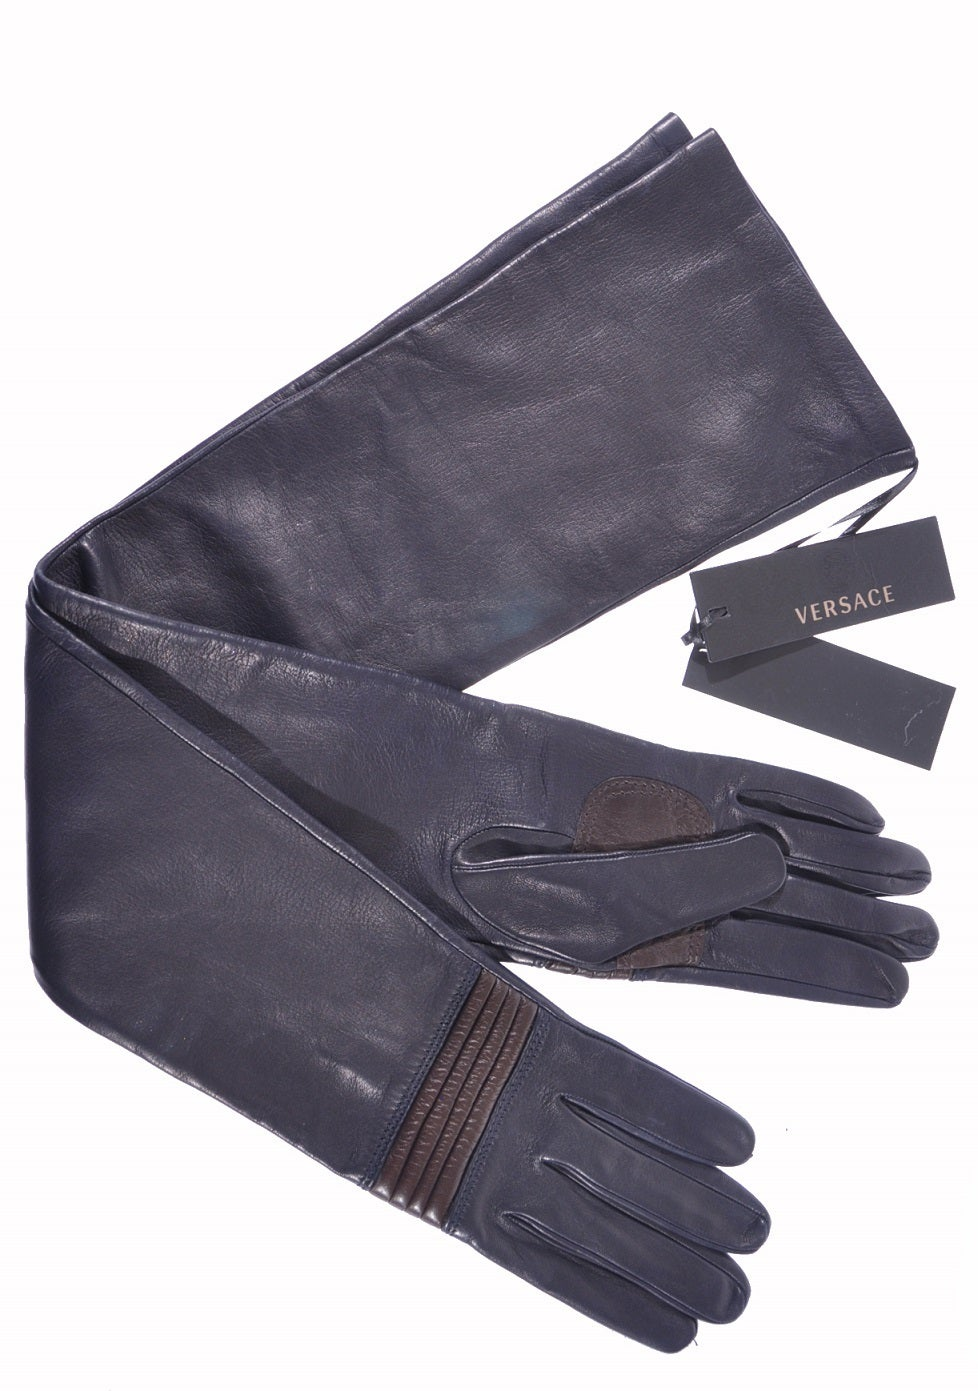 NEW VERSACE LONG LEATHER GLOVES sz. M 2